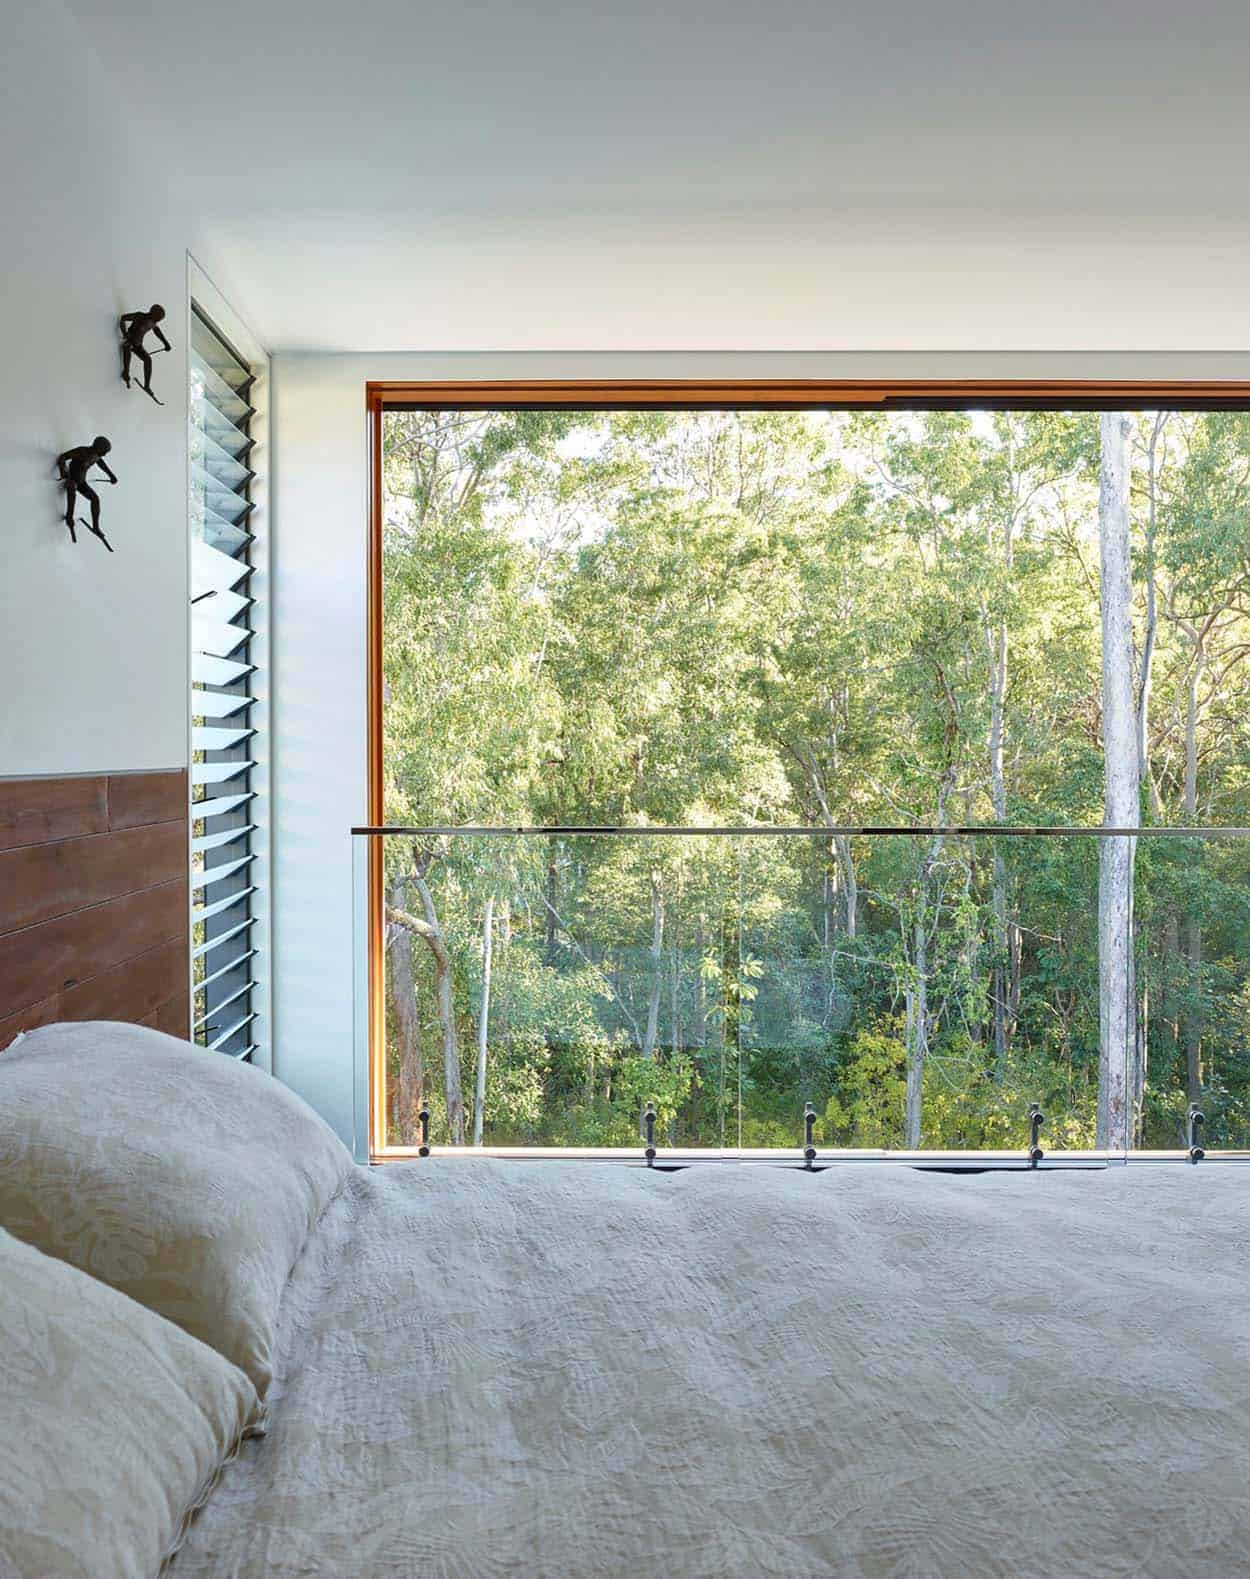 Architecture-Contemporary-Home-ONeill Architecture-11-1 Kindesign